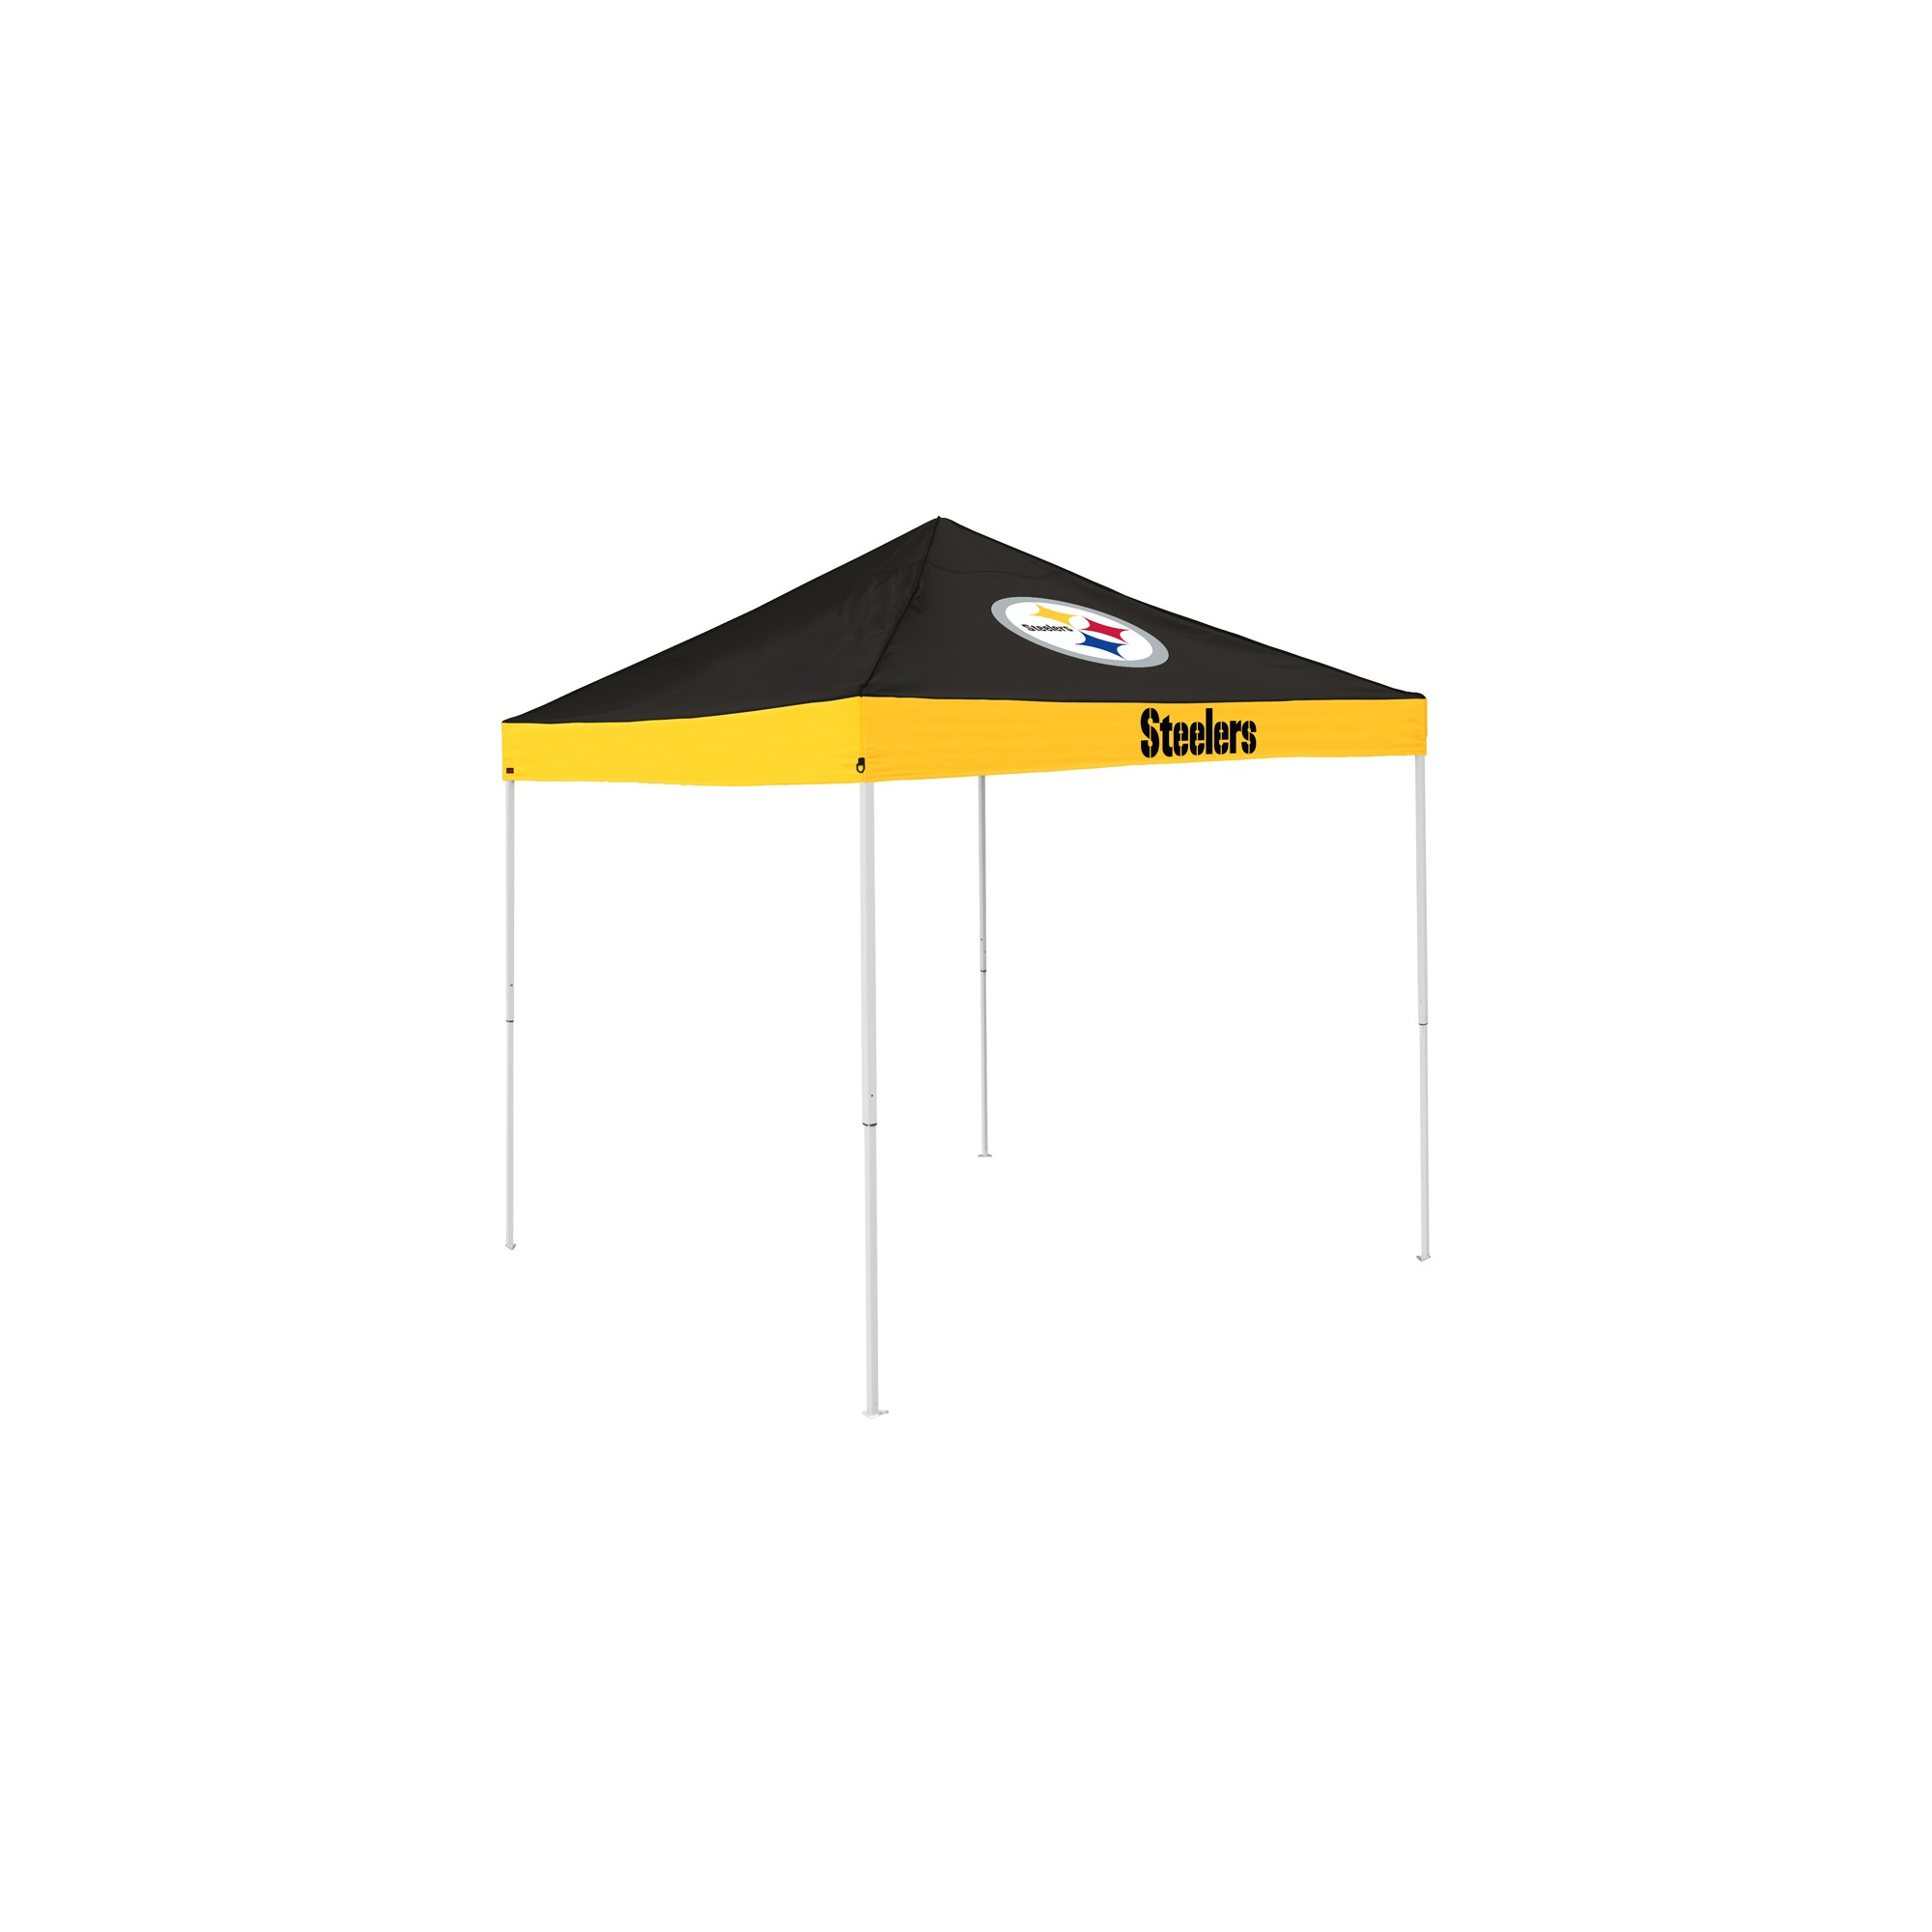 NFL Pittsburgh Steelers 9x9u0027 Gameday Canopy Tent  sc 1 st  Pinterest & NFL Pittsburgh Steelers 9x9u0027 Gameday Canopy Tent | Canopy tent ...